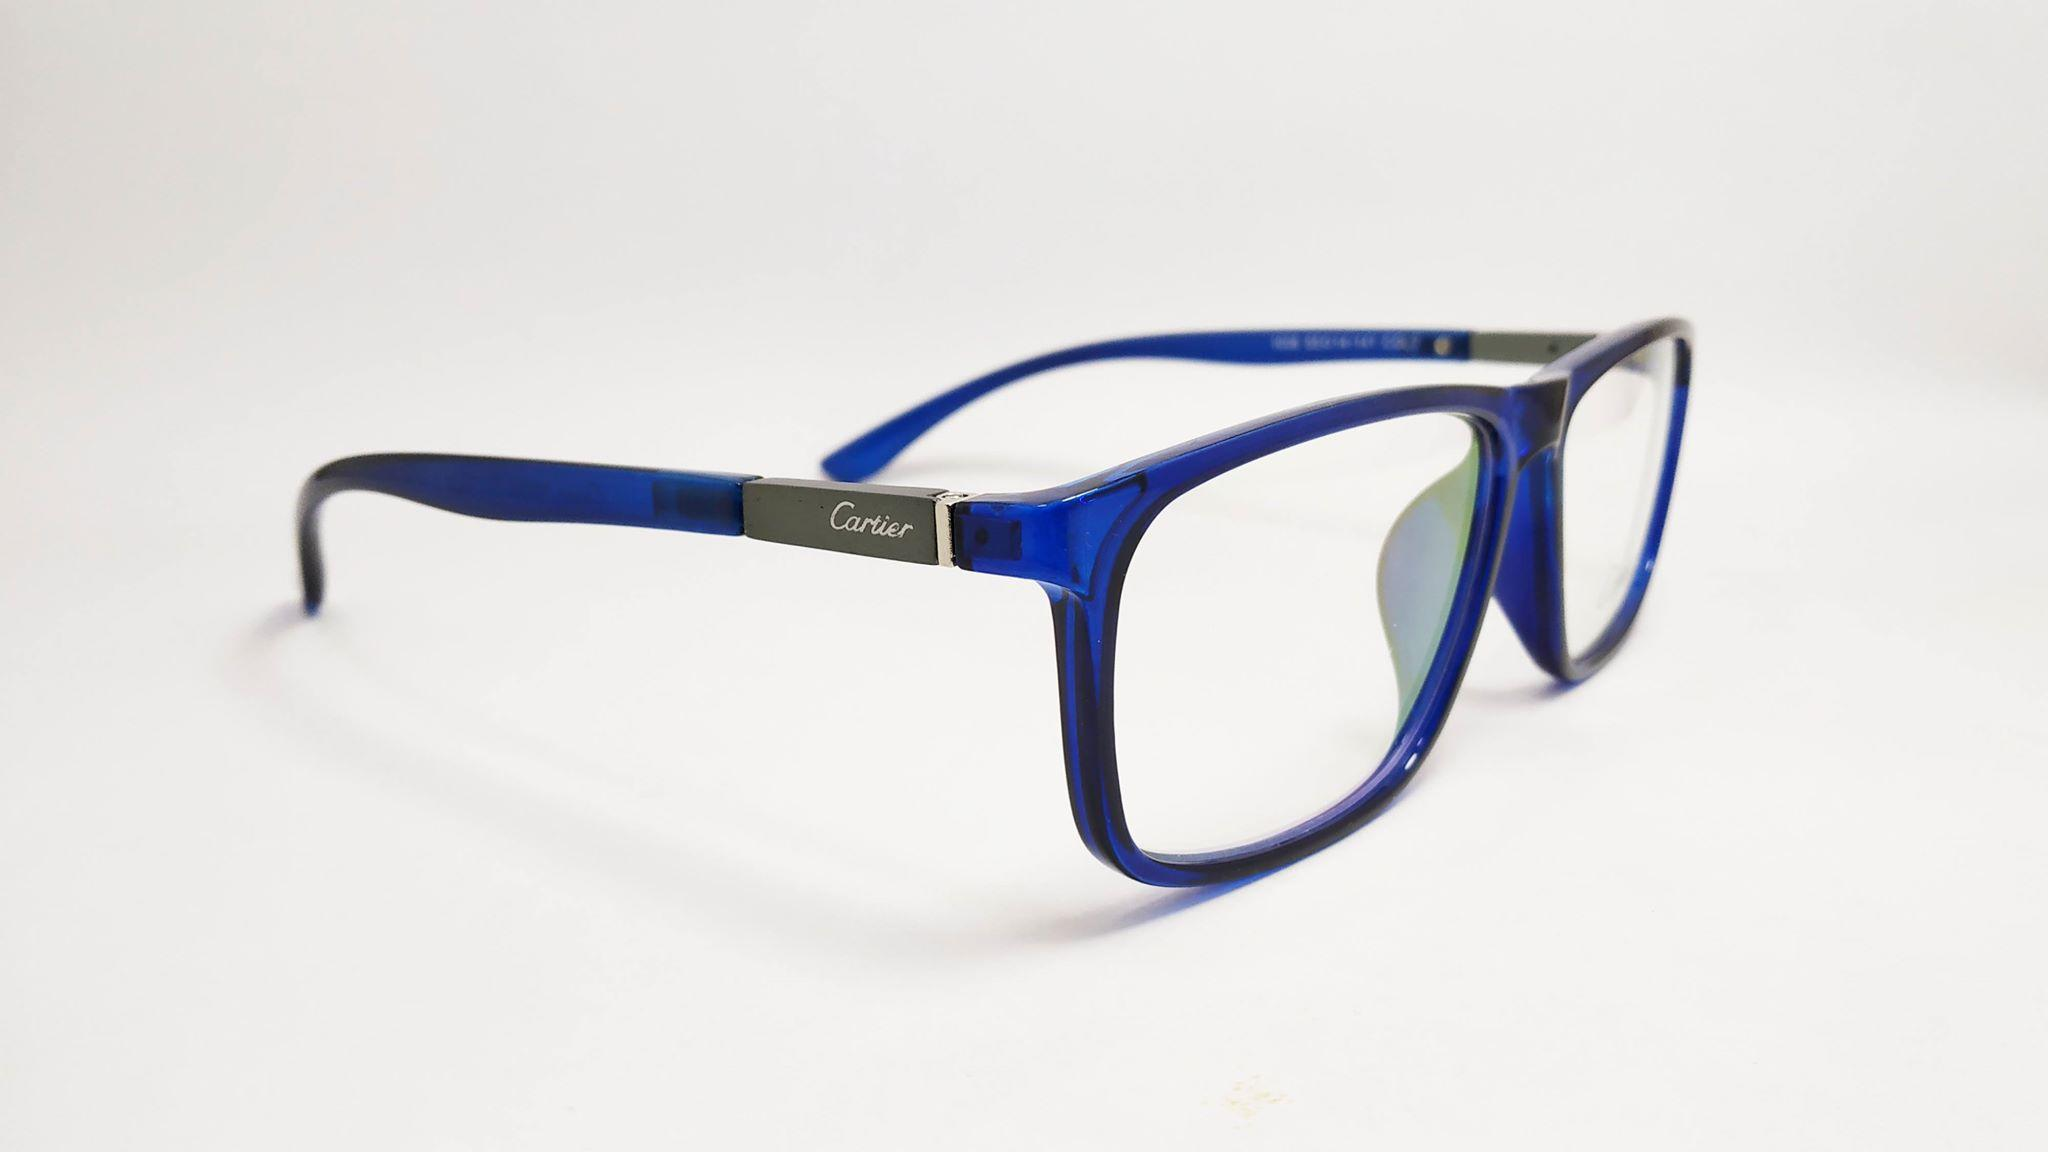 91ae72086d57 Buy No Brand Womens Prescription glasses at Best Prices Online in ...